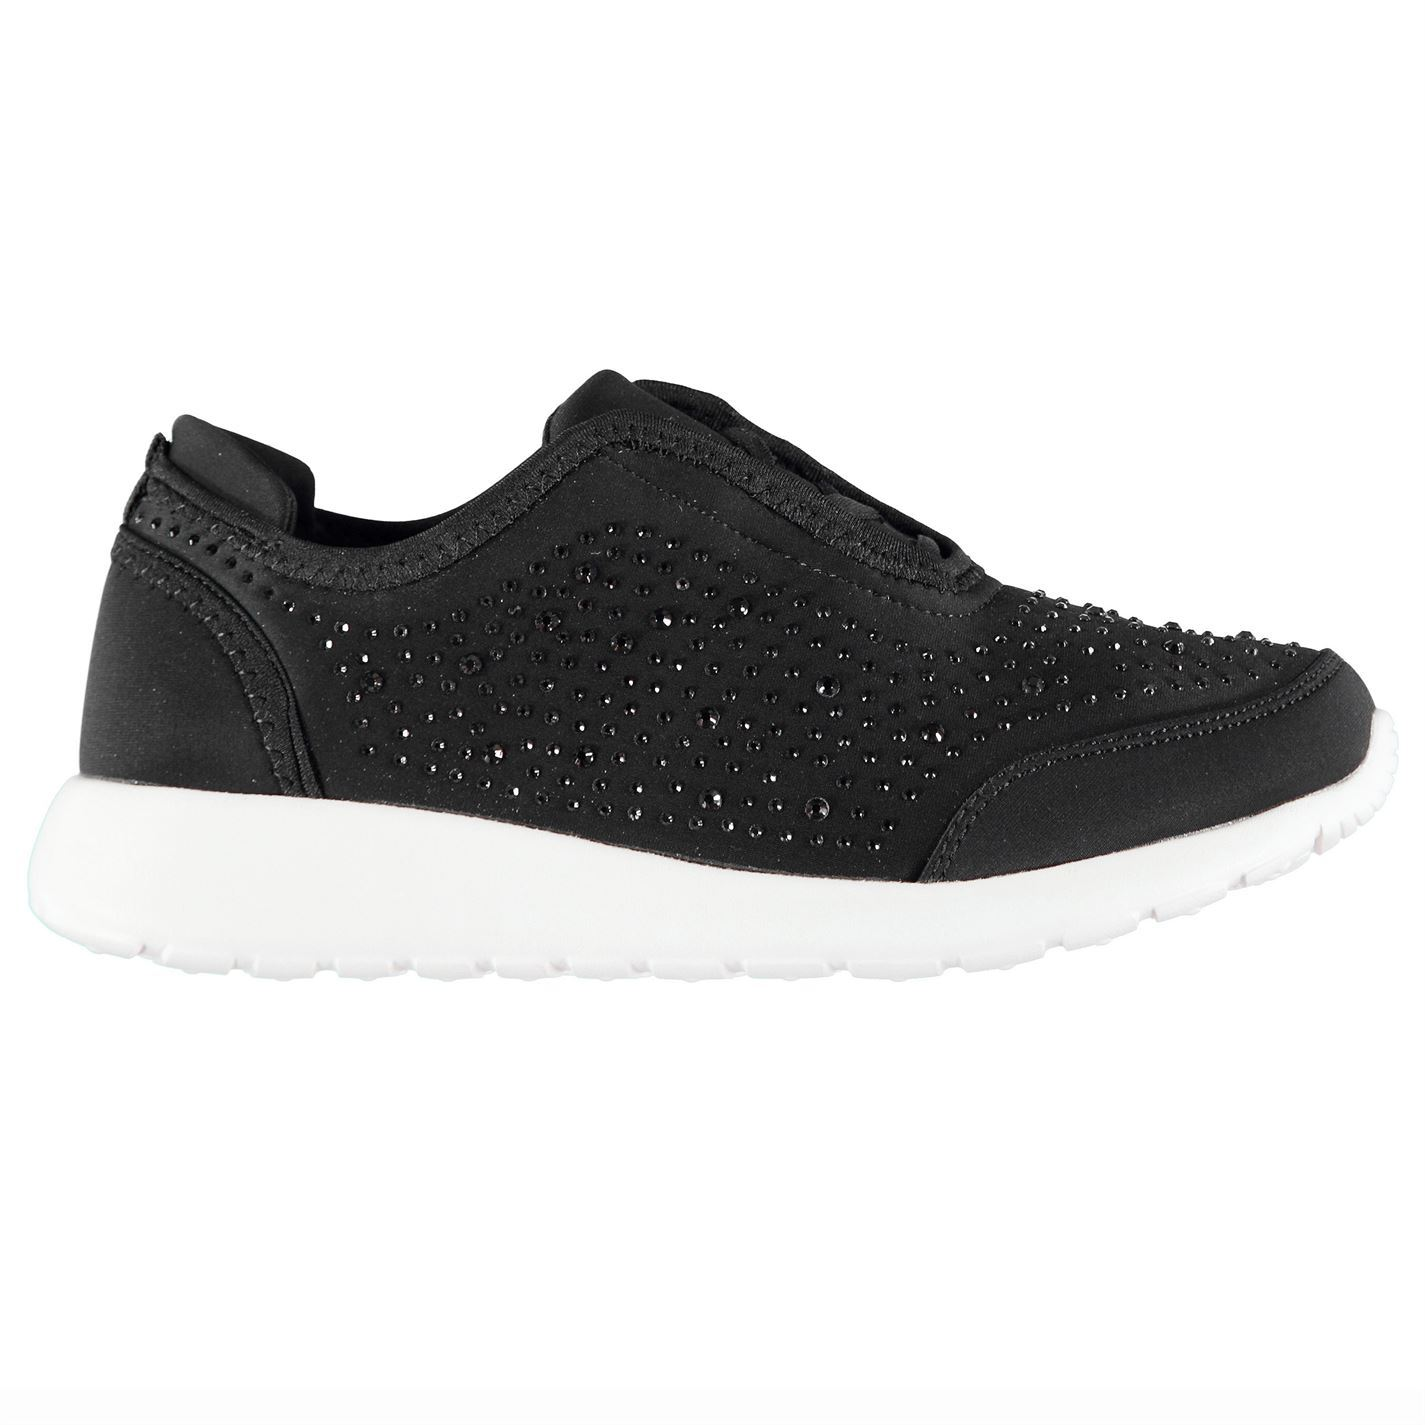 Womens Fabric Pero Trainers Runners Lace Up Tonal Stitching New